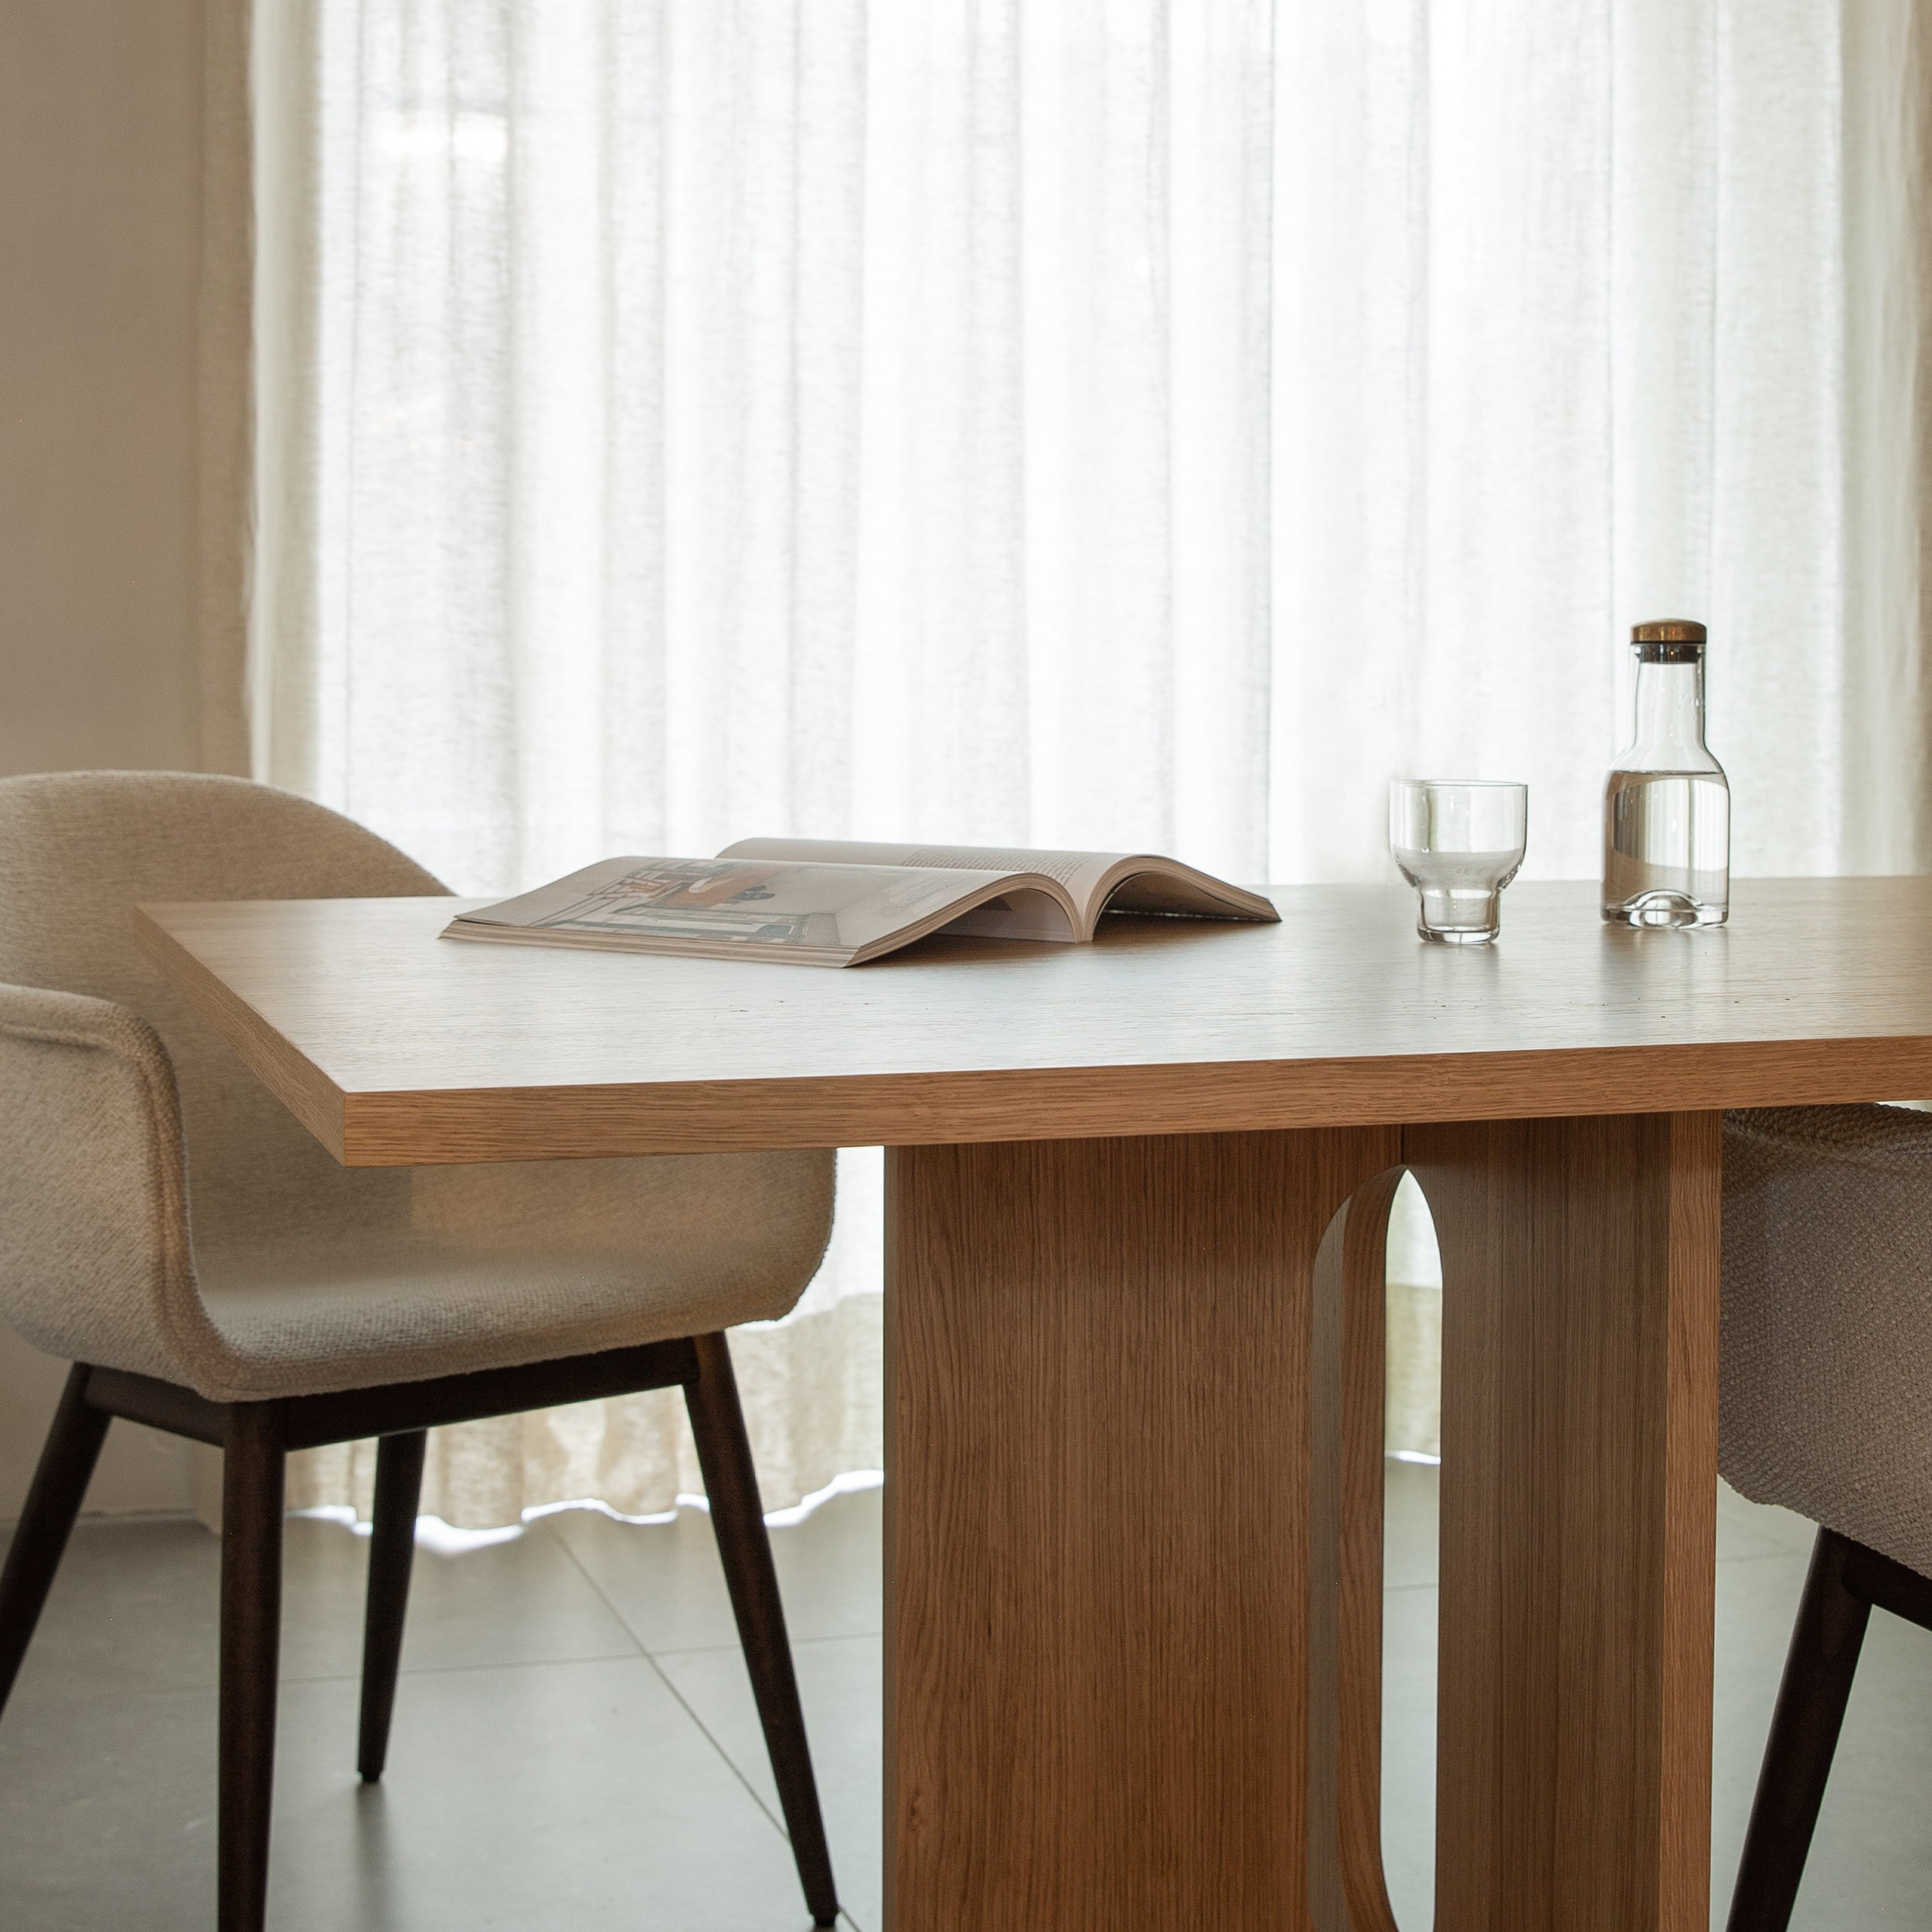 Androgyne Dining Table: Rectangular